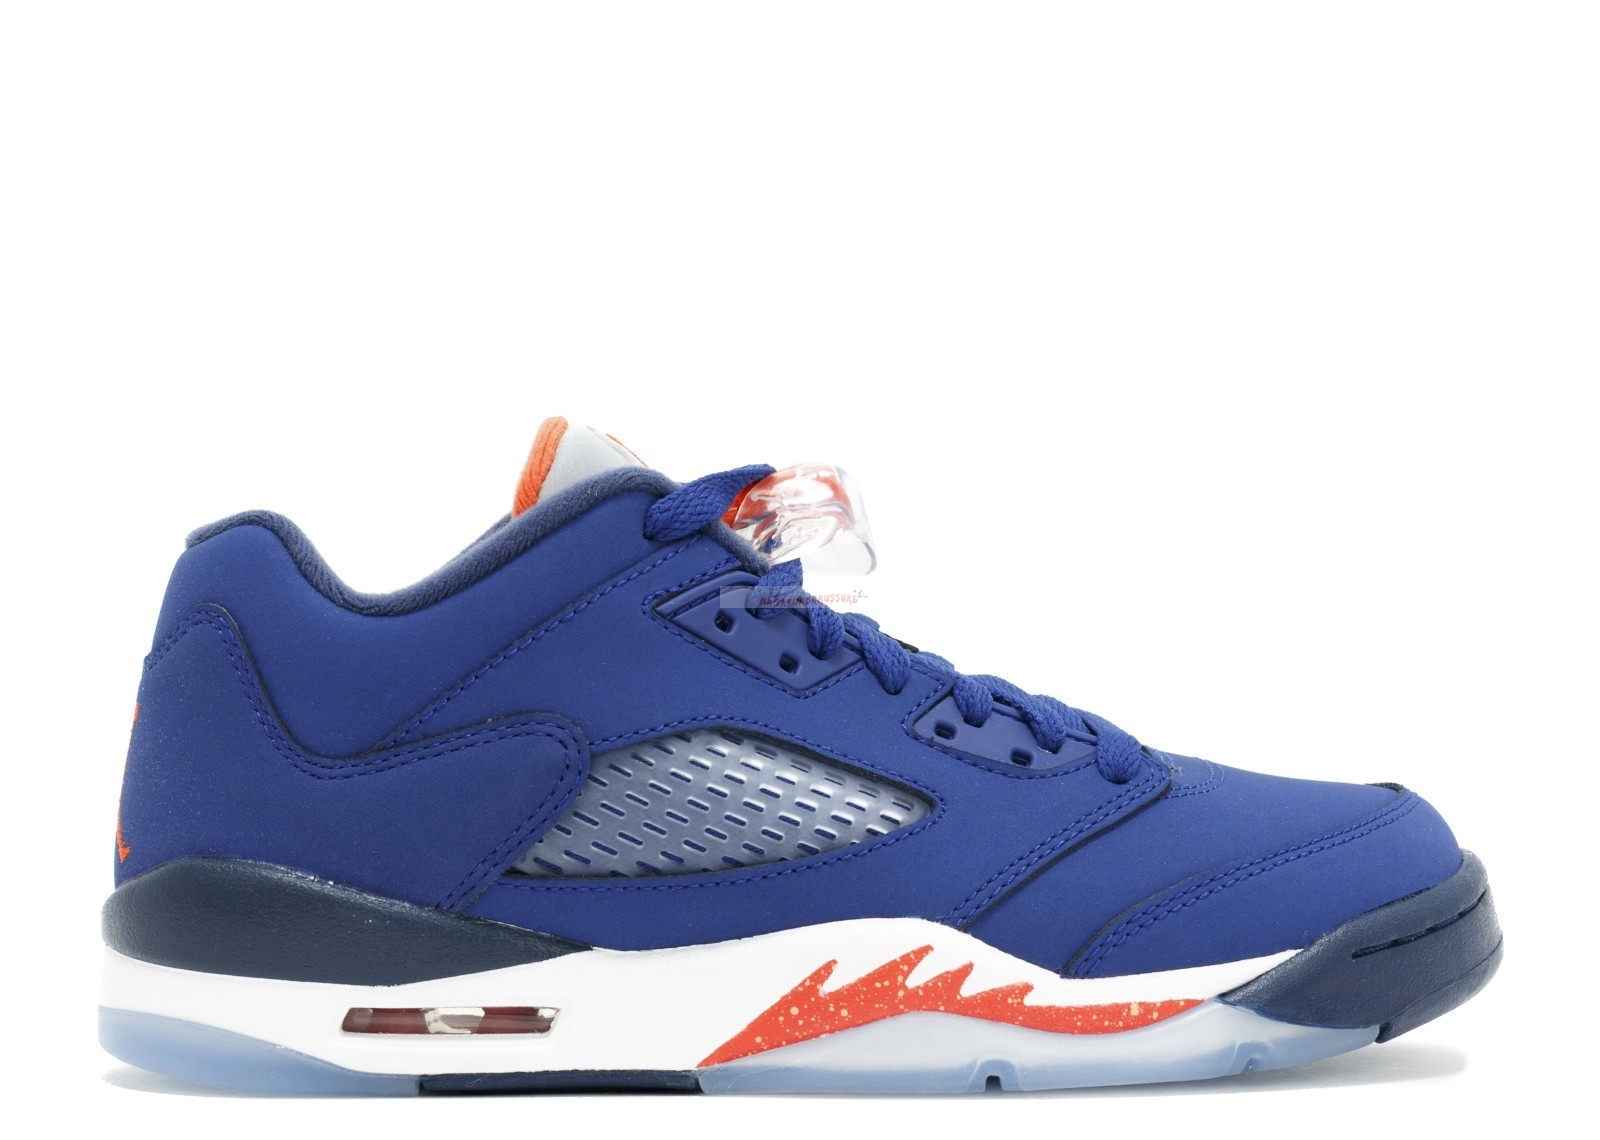 "Air Jordan 5 Retro Low (Gs) ""Knicks"" Bleu Orange (314338-417) Chaussure de Basket"